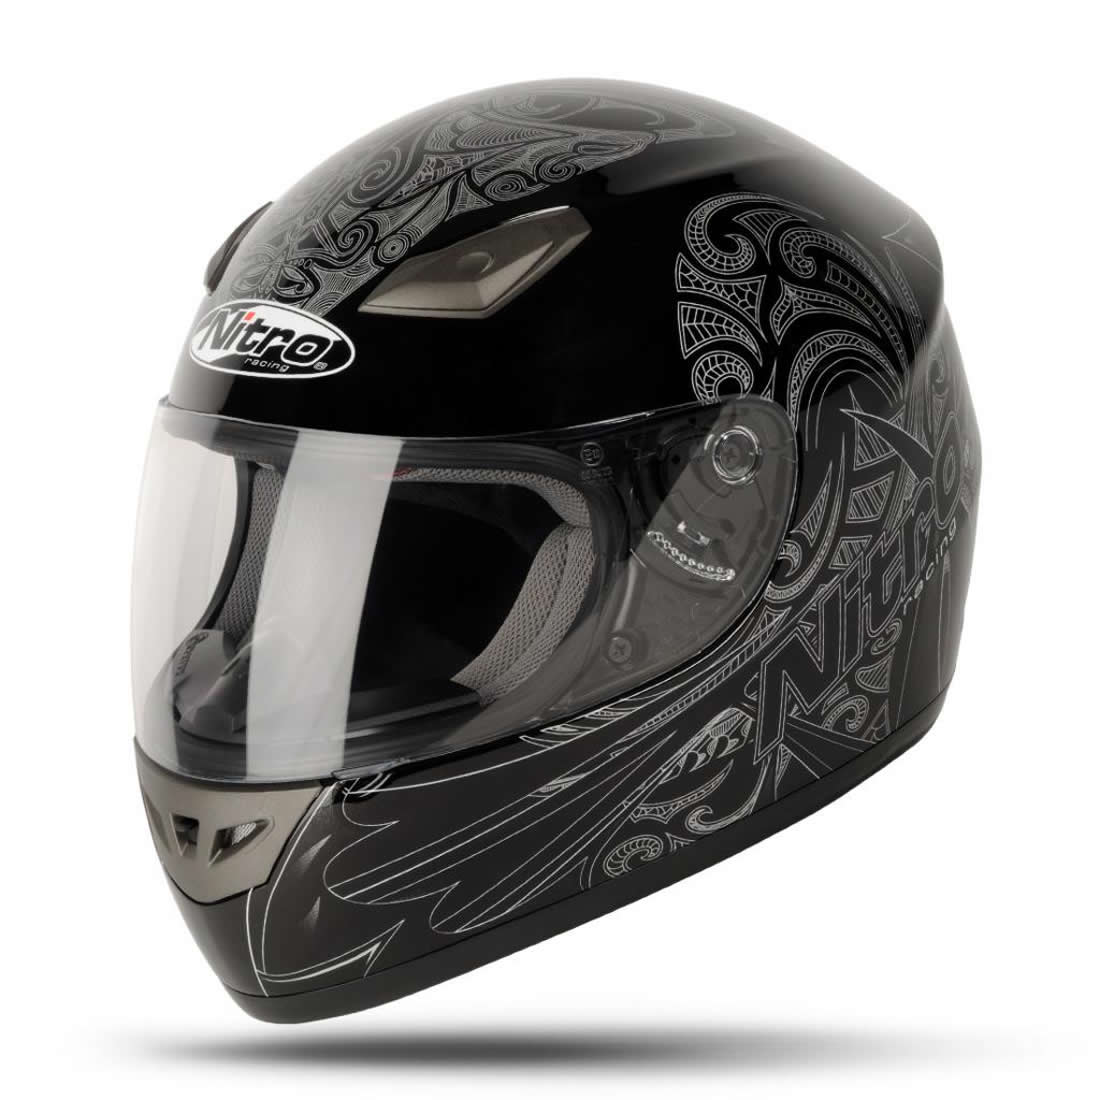 Nitro Moko Luxe Tribal Graphic Tattoo Full Face Motorcycle  : 8951 Nitro Moko Luxe Motorcycle Helmet Black 1100 1 <strong>O'Neal</strong> Helmets Motorcycle from www.ebay.com size 1100 x 1100 jpeg 101kB